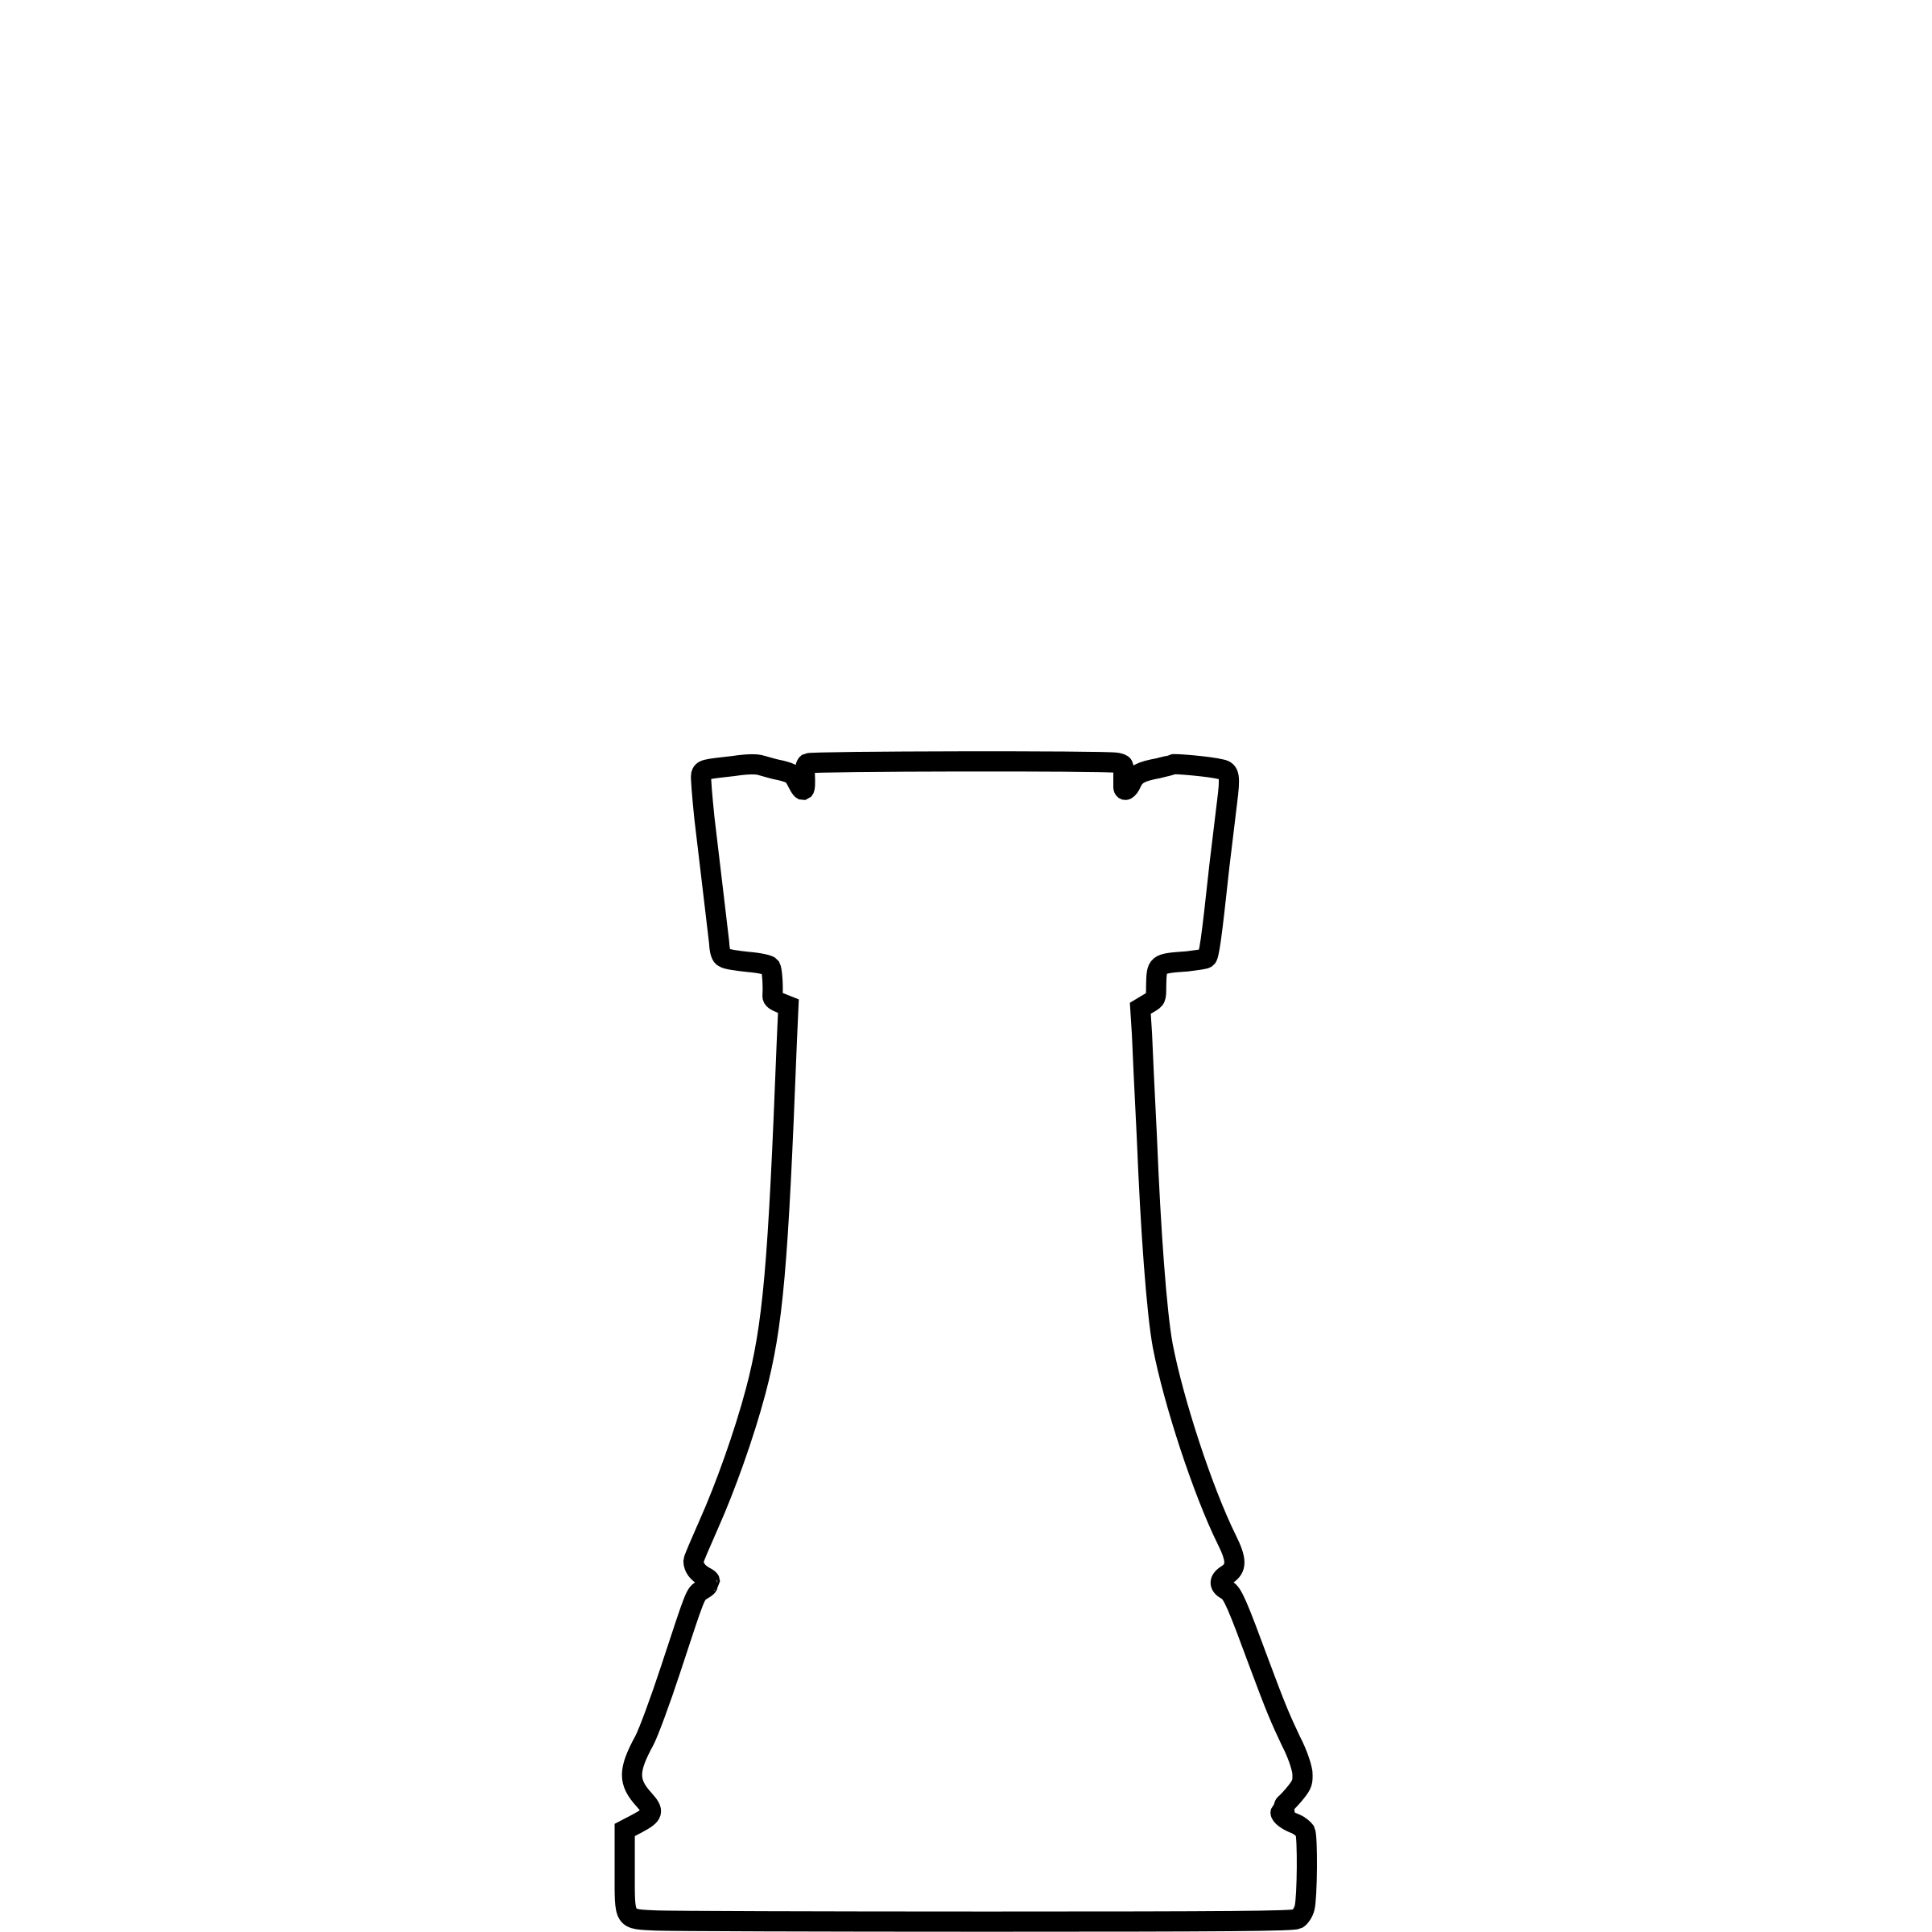 White Silhouette Chess Piece REMIX – Rook / Torre by DG-RA